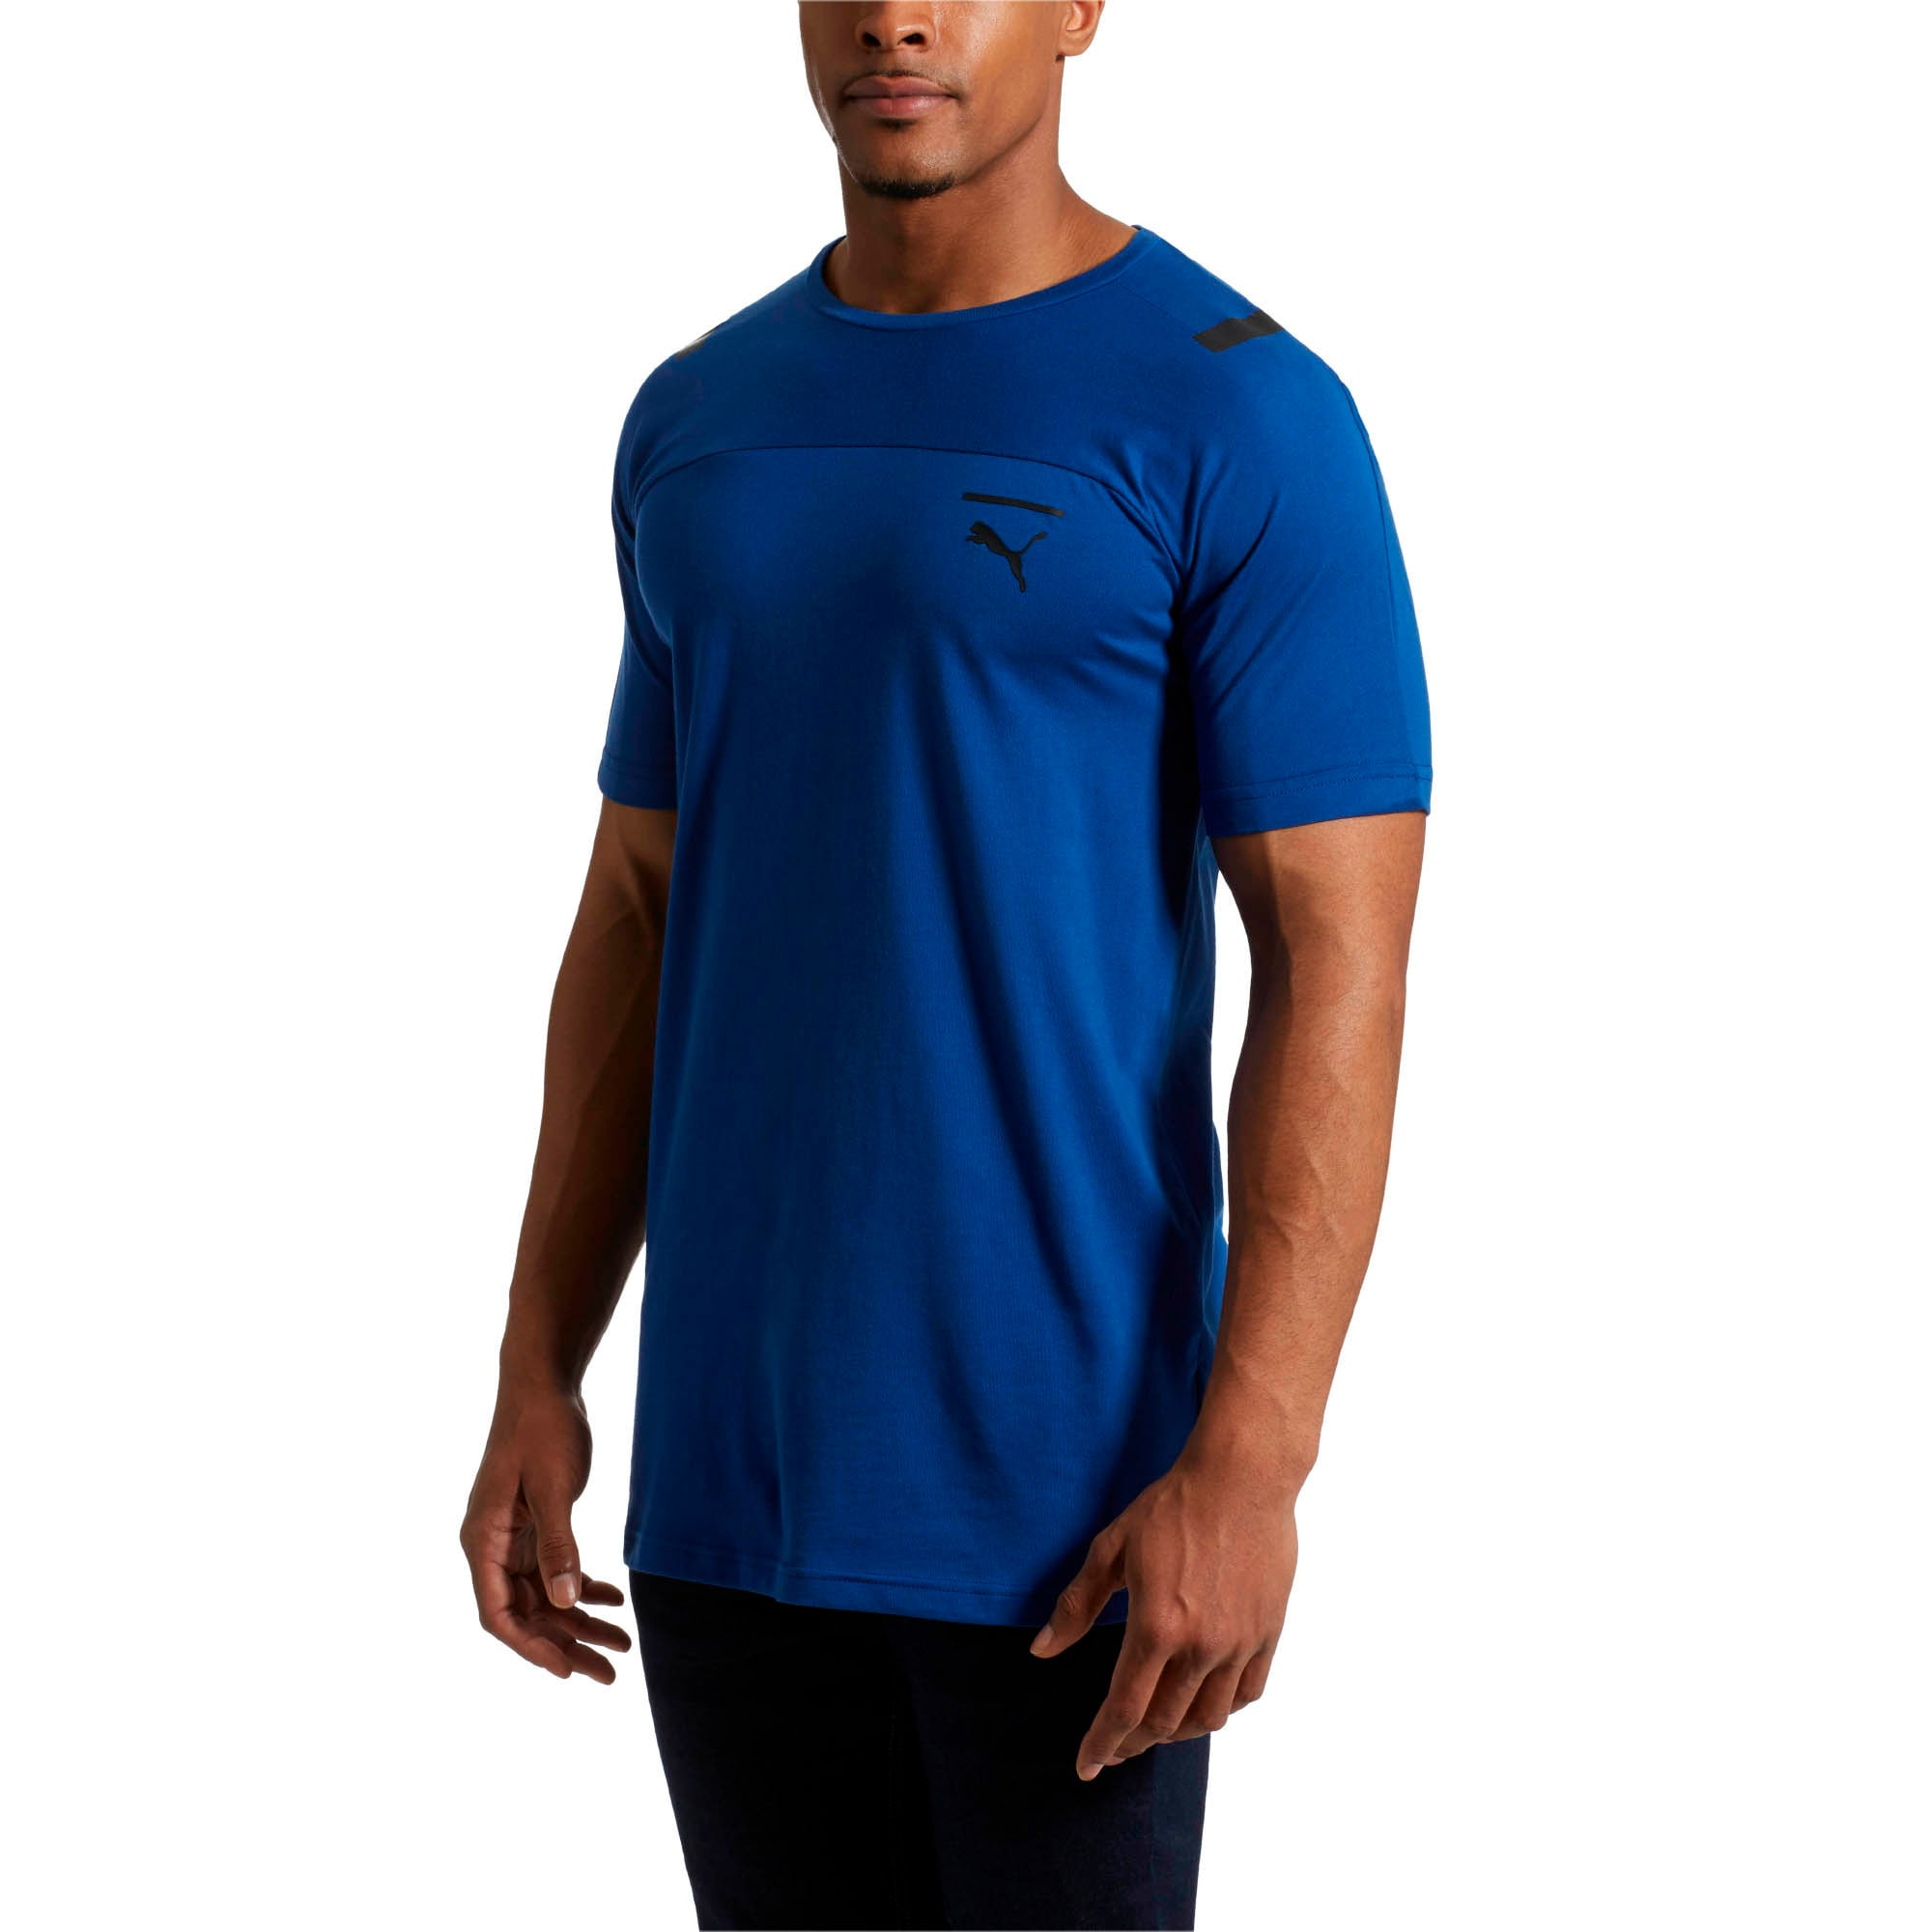 Thumbnail 2 of Pace Men's Tee, Sodalite Blue, medium